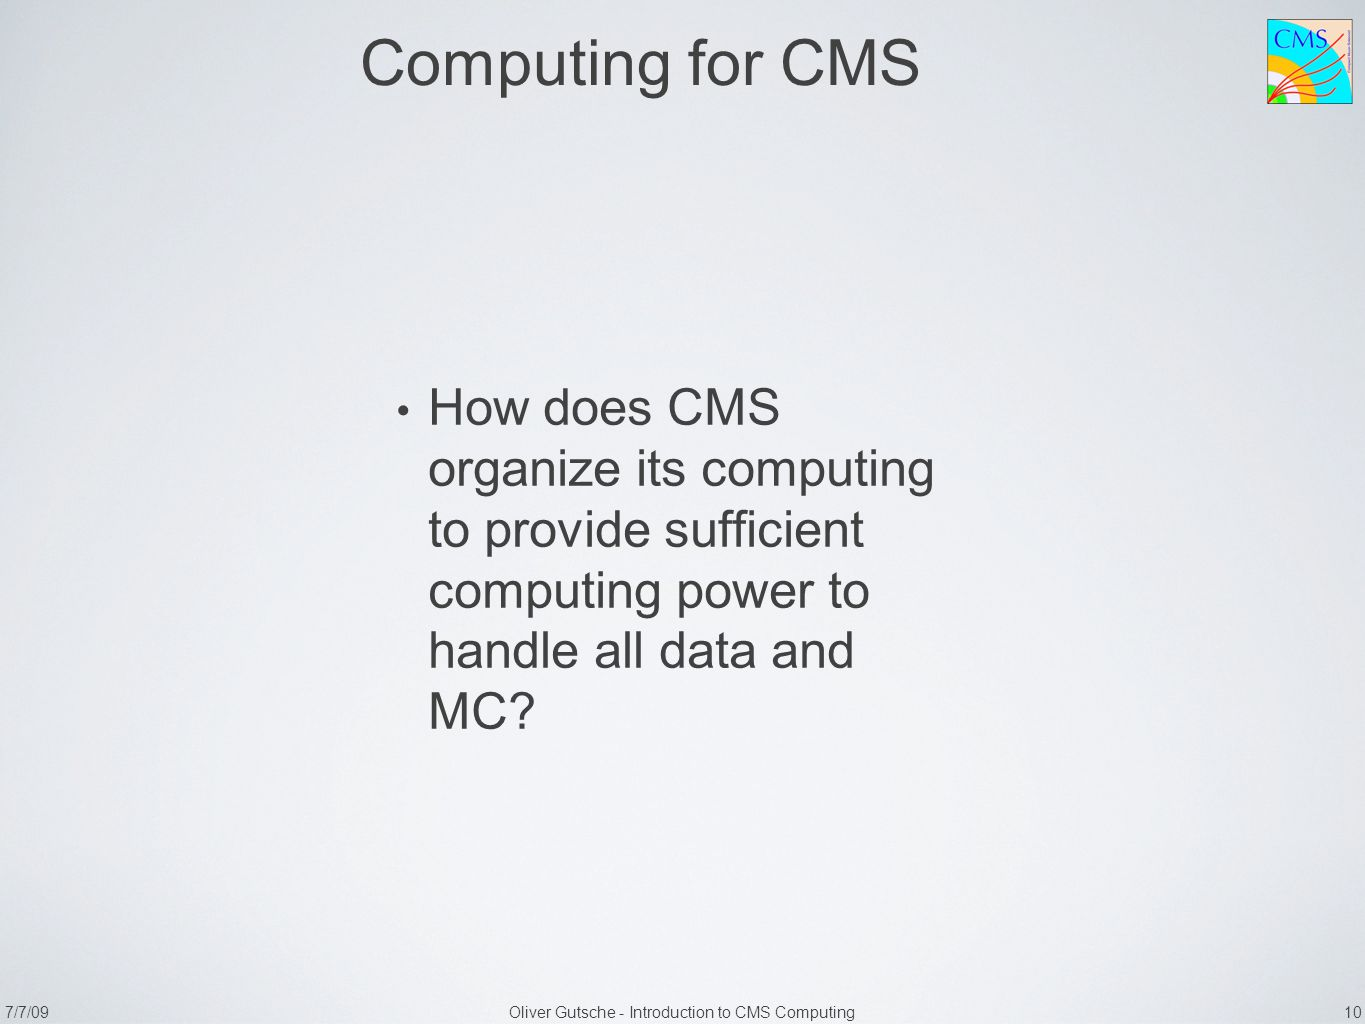 7/7/09Oliver Gutsche - Introduction to CMS Computing 10 Computing for CMS How does CMS organize its computing to provide sufficient computing power to